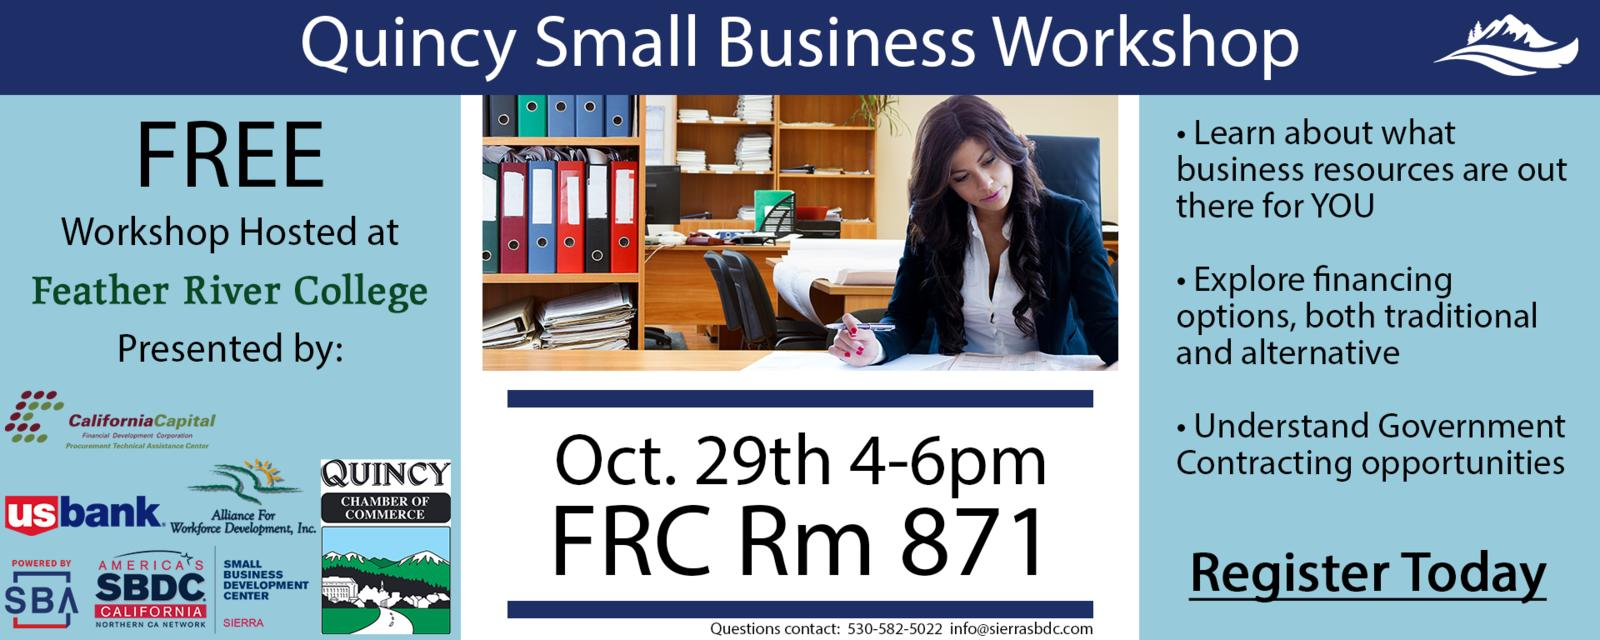 Free work small business workshopt, Oct 29t 4-6pm at FRC in Room 871, Click to register, Questions contact 530-582-5022 or info@sierrasbdc.com